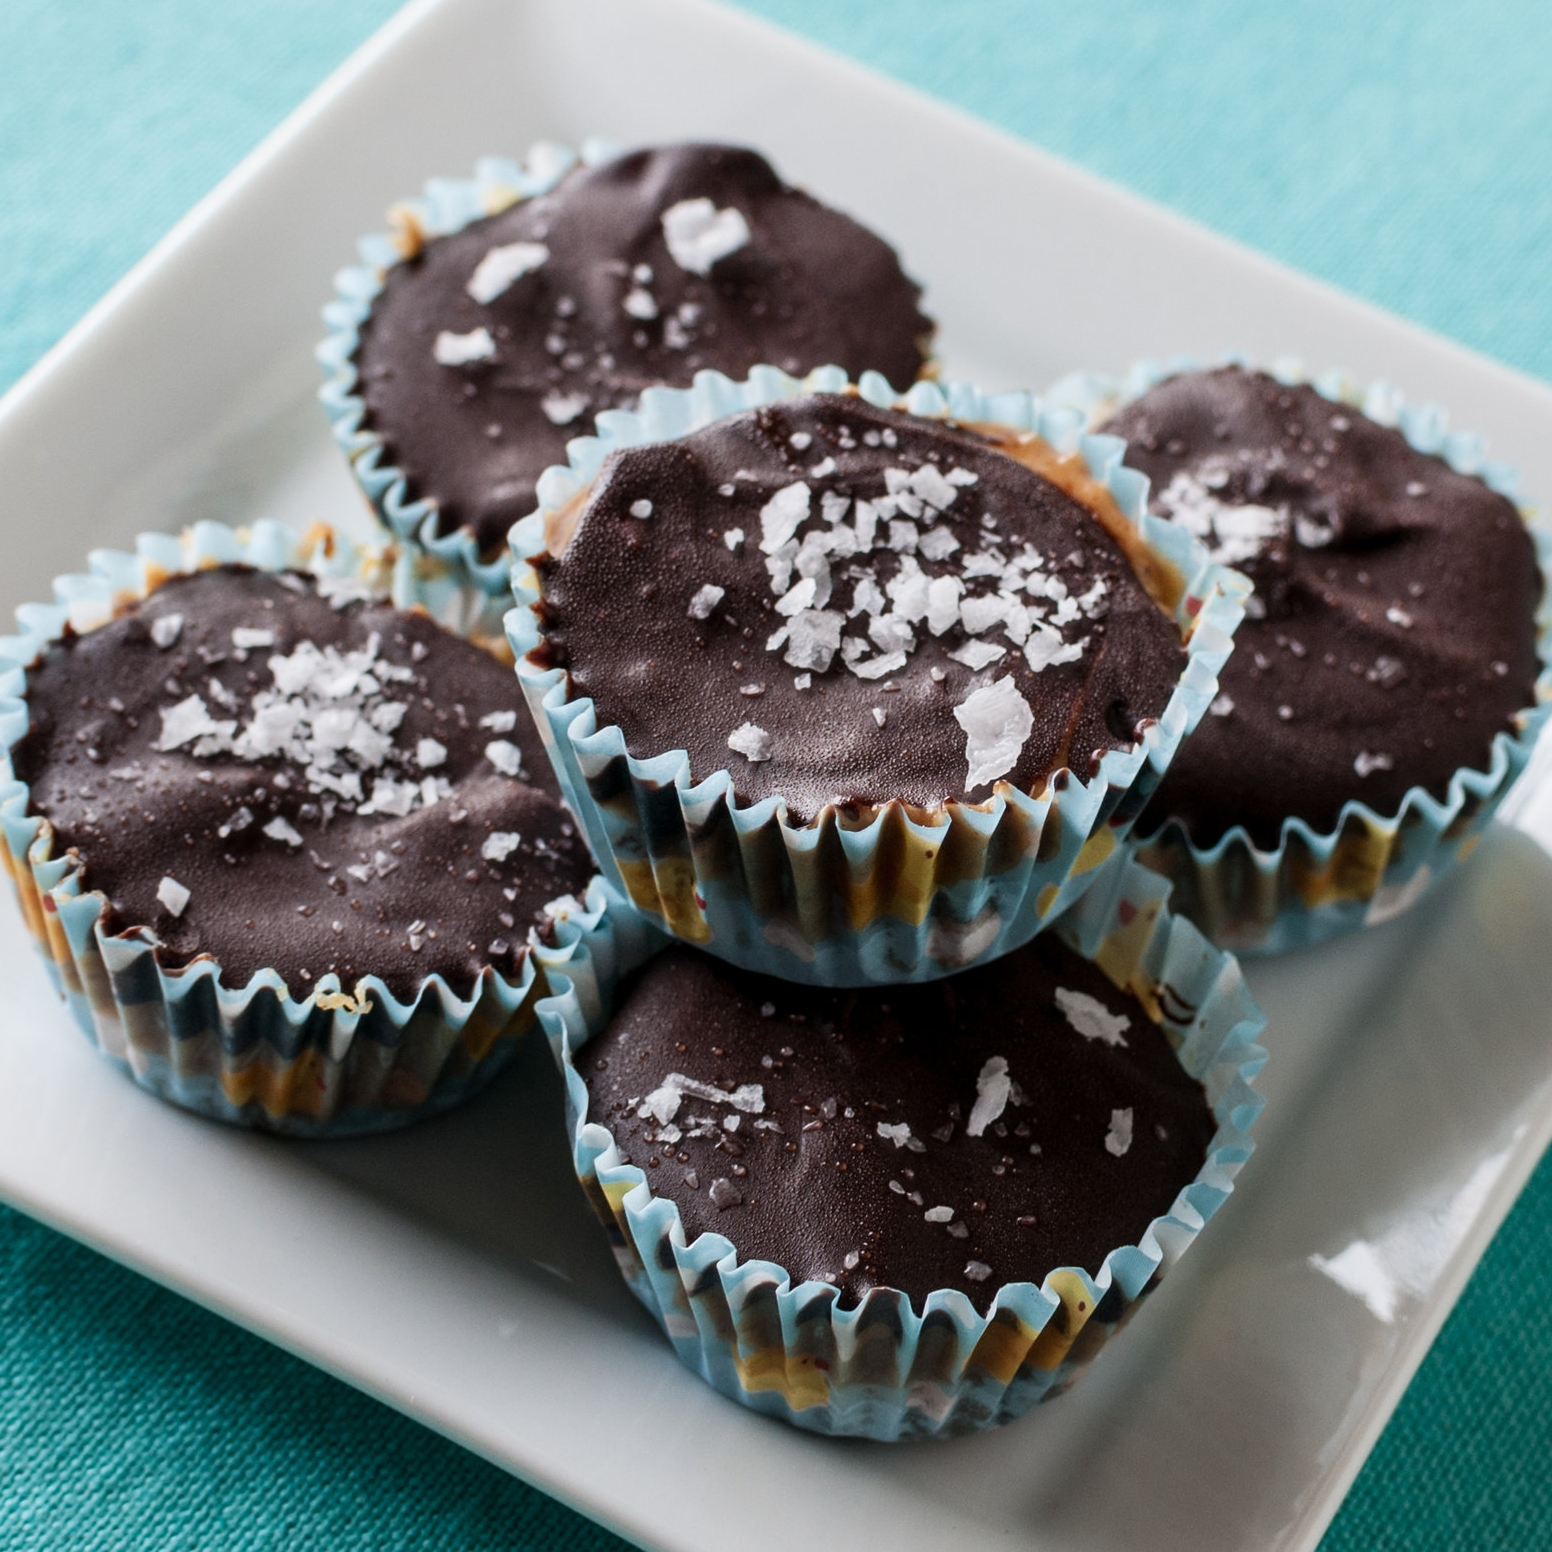 Crunchy canna cups with peanut butter and dark chocolate